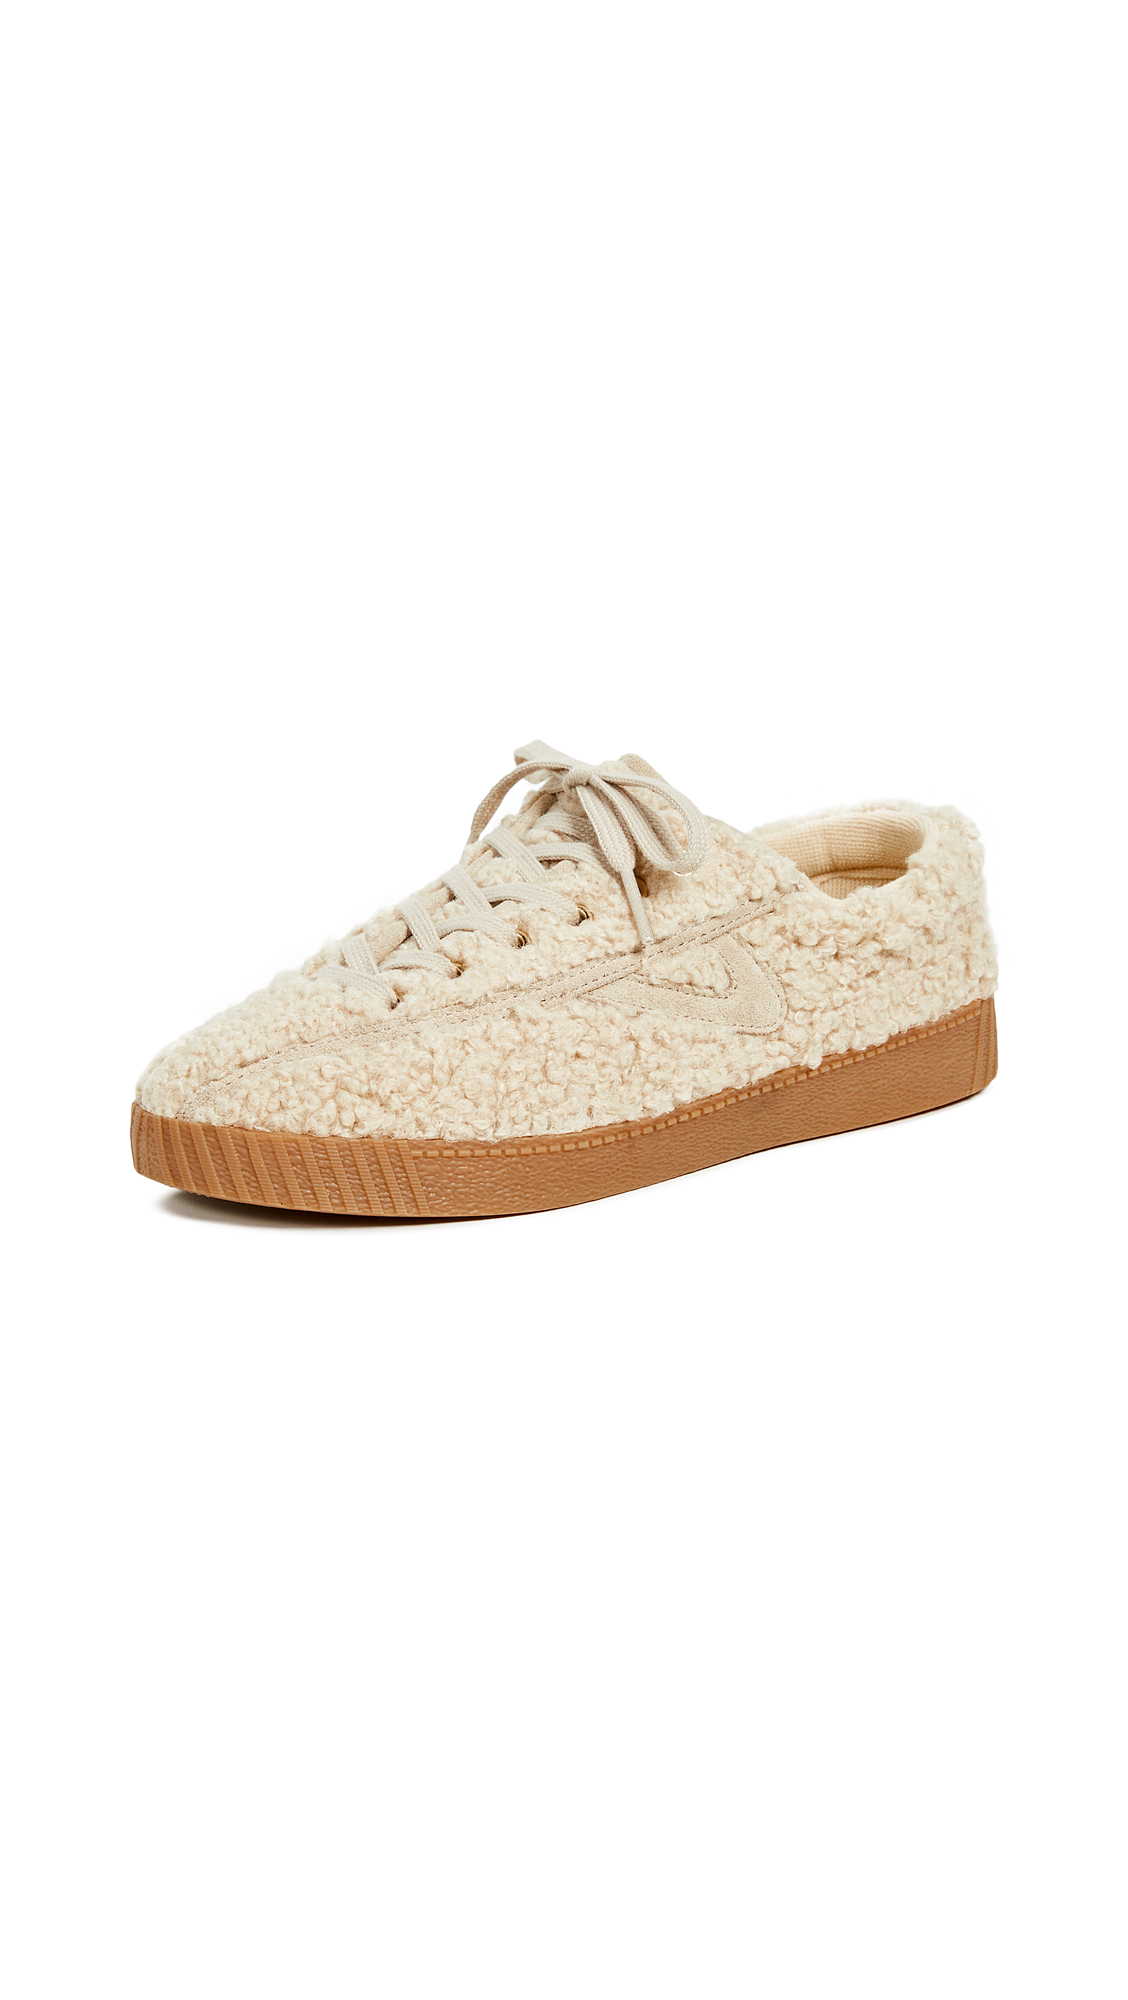 Tretorn Nylite Sherpa Lace Up Sneakers - Cream/Cream